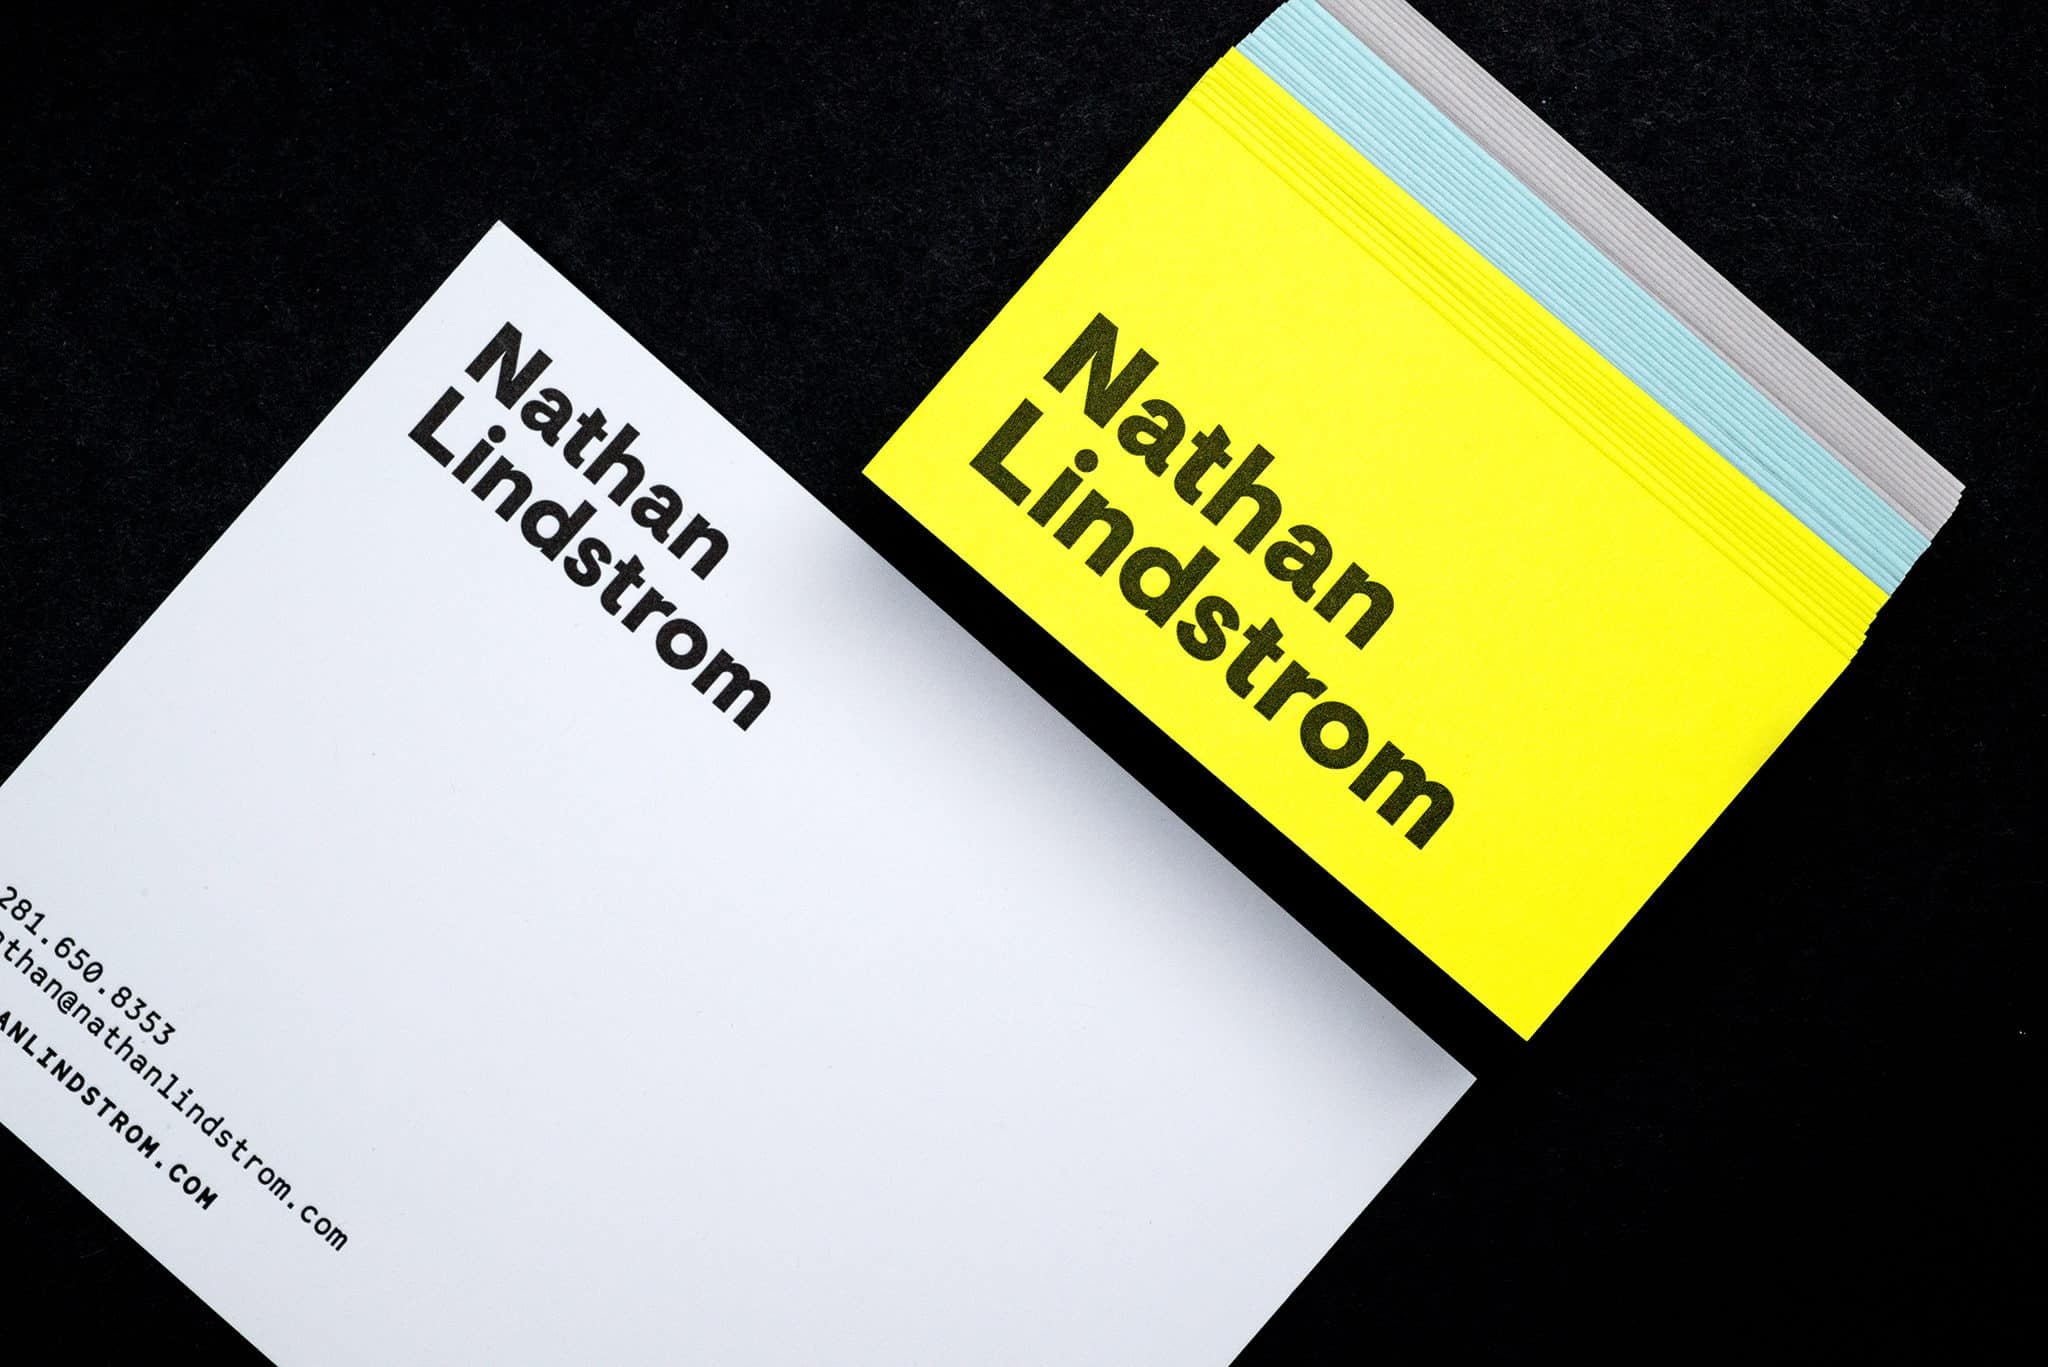 Letterpress printed stationery notecards for Nathan Lindstrom Photography | Designed by Field of Study: A branding and graphic design consultancy | Houston TX | Jennifer Blanco & John Earles